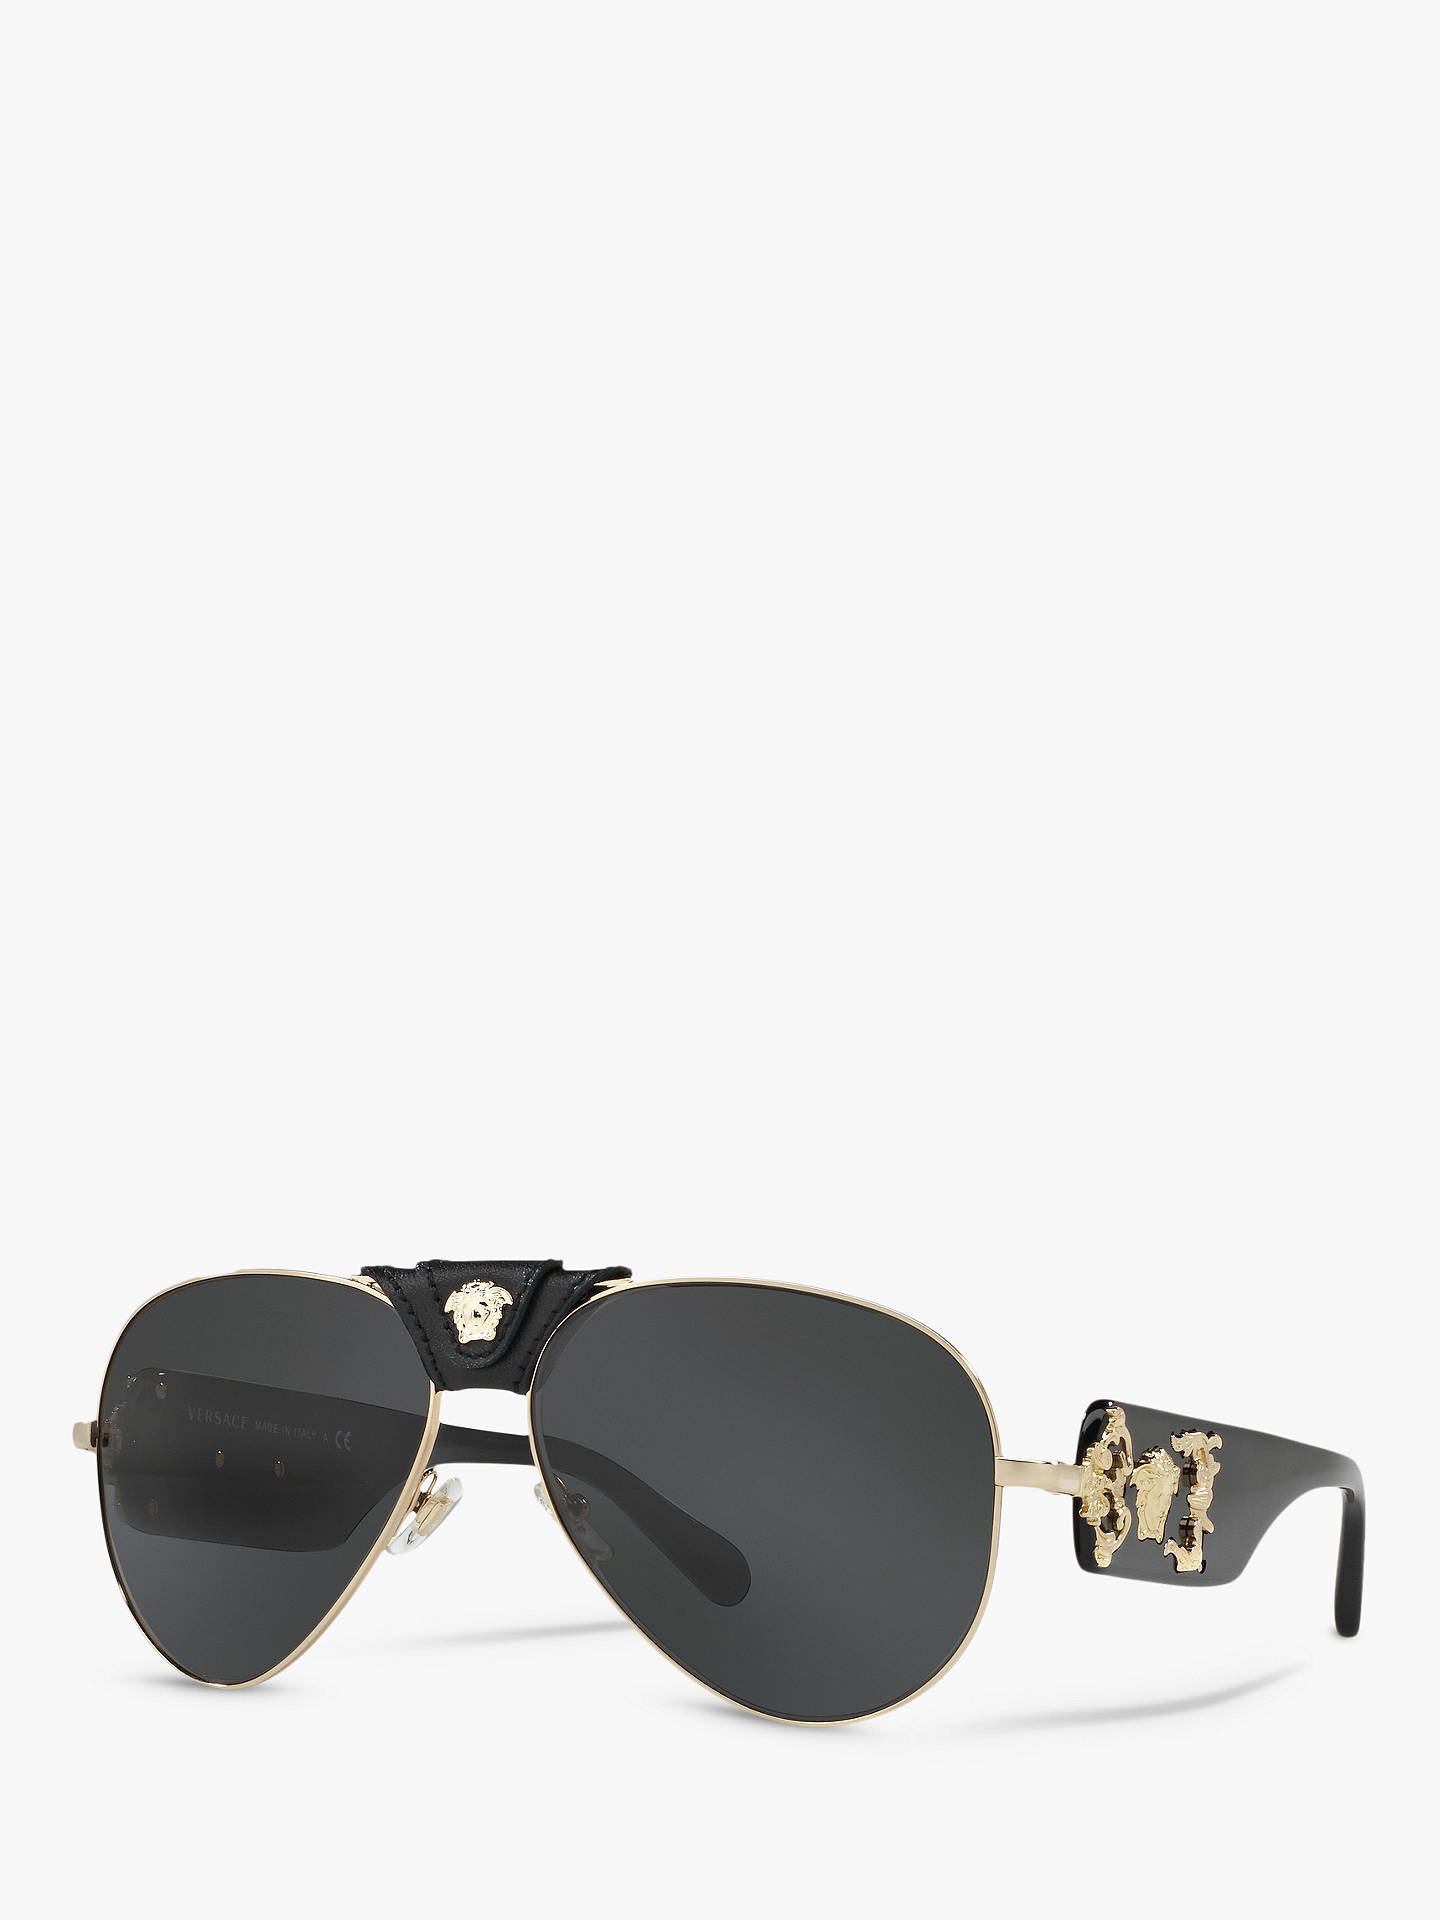 8d86502805b8 Buy Versace VE2150Q Women s Statement Aviator Sunglasses